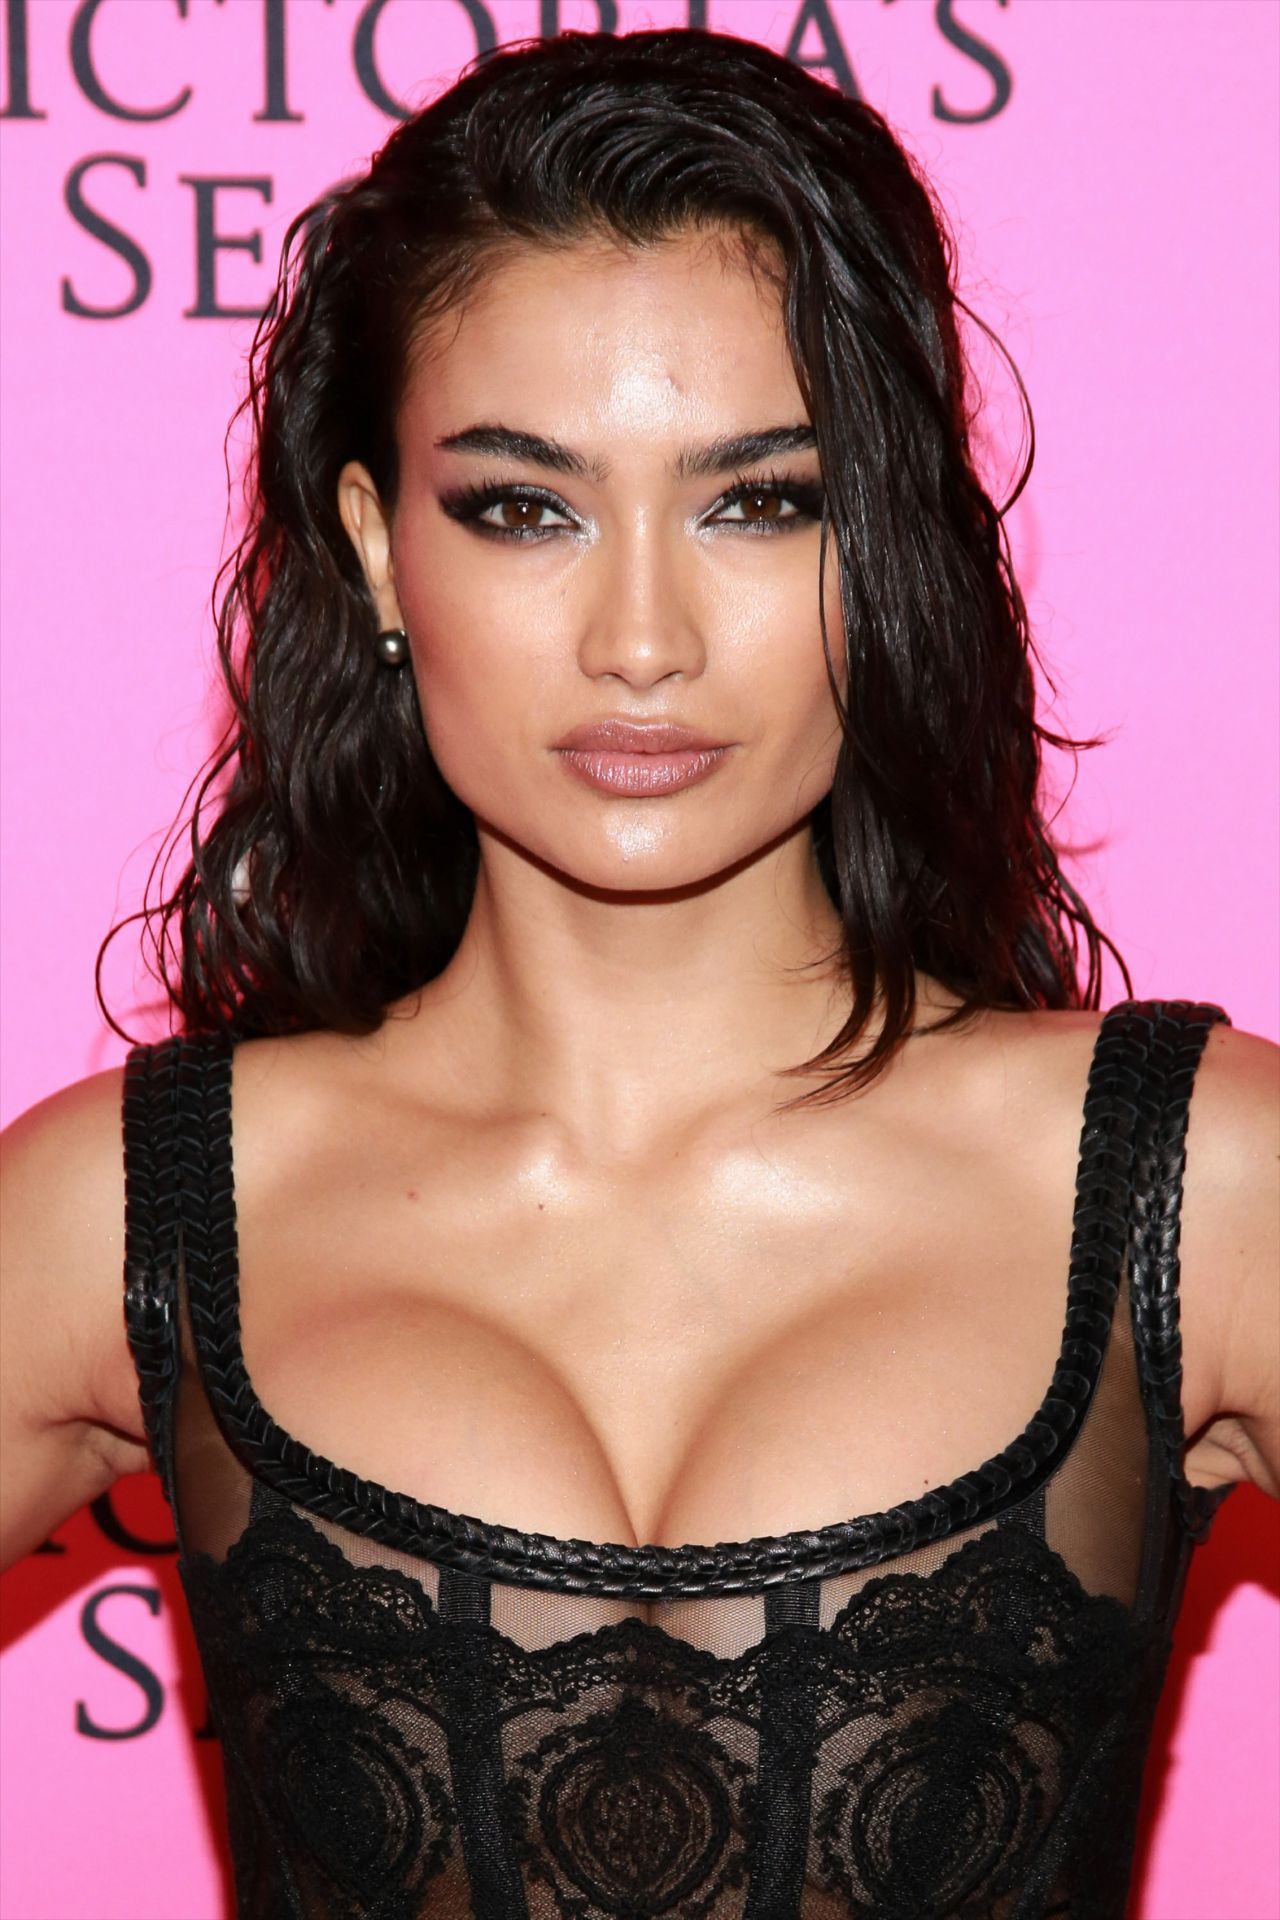 Kelly Gale Hot Revealing Pic - Kelly Gale Hot Revealing Pic